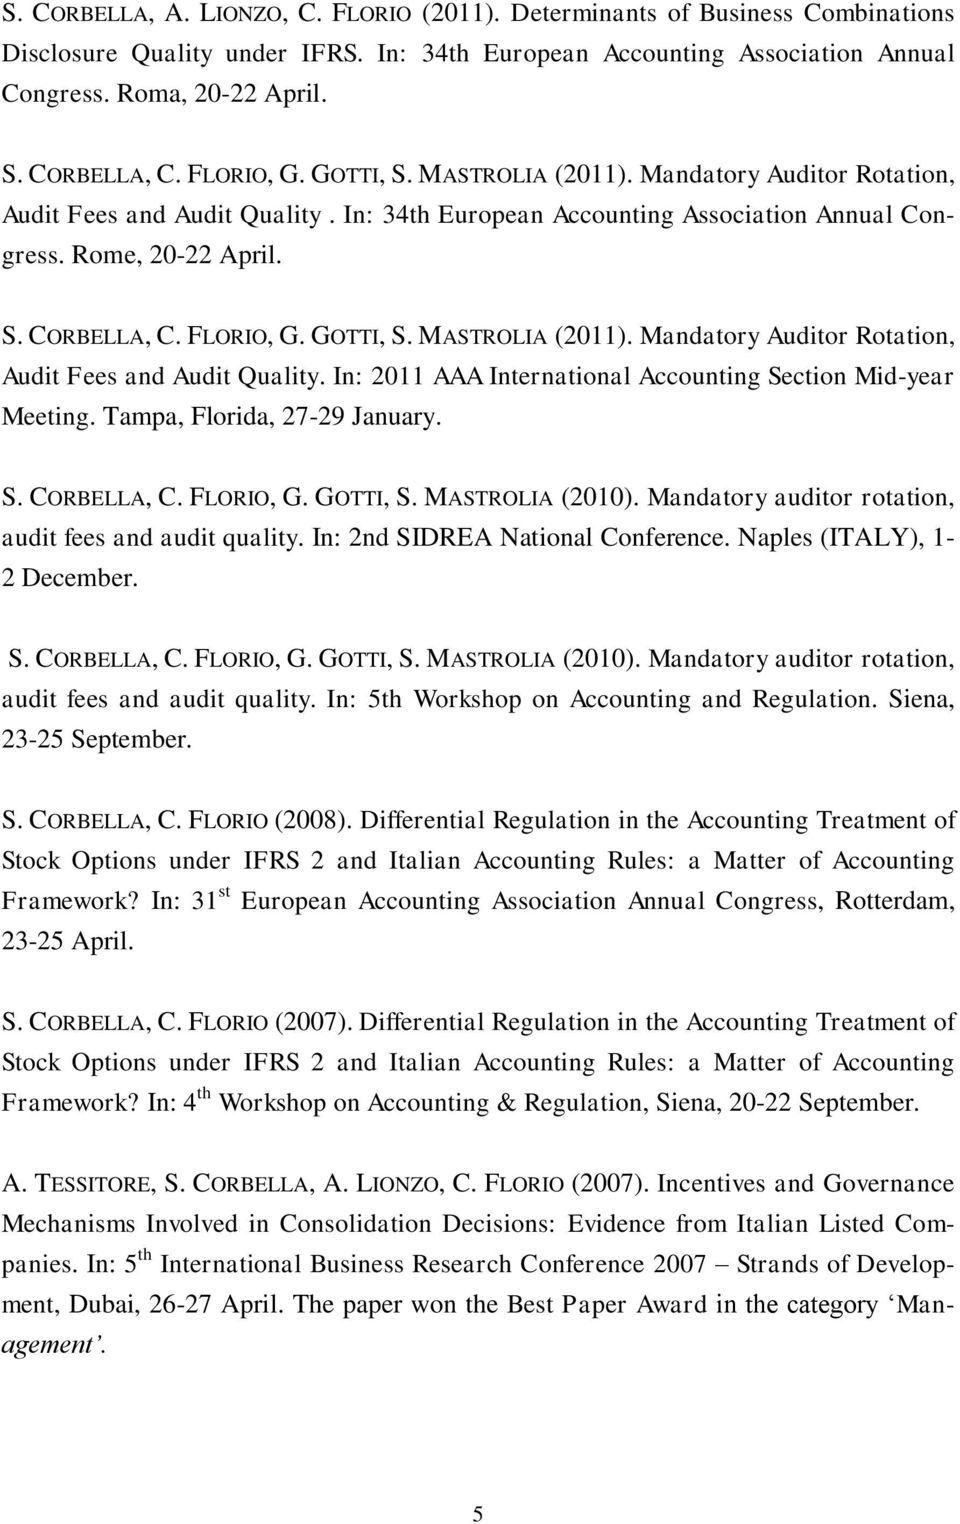 FLORIO, G. GOTTI, S. MASTROLIA (2011). Mandatory Auditor Rotation, Audit Fees and Audit Quality. In: 2011 AAA International Accounting Section Mid-year Meeting. Tampa, Florida, 27-29 January. S. CORBELLA, C.